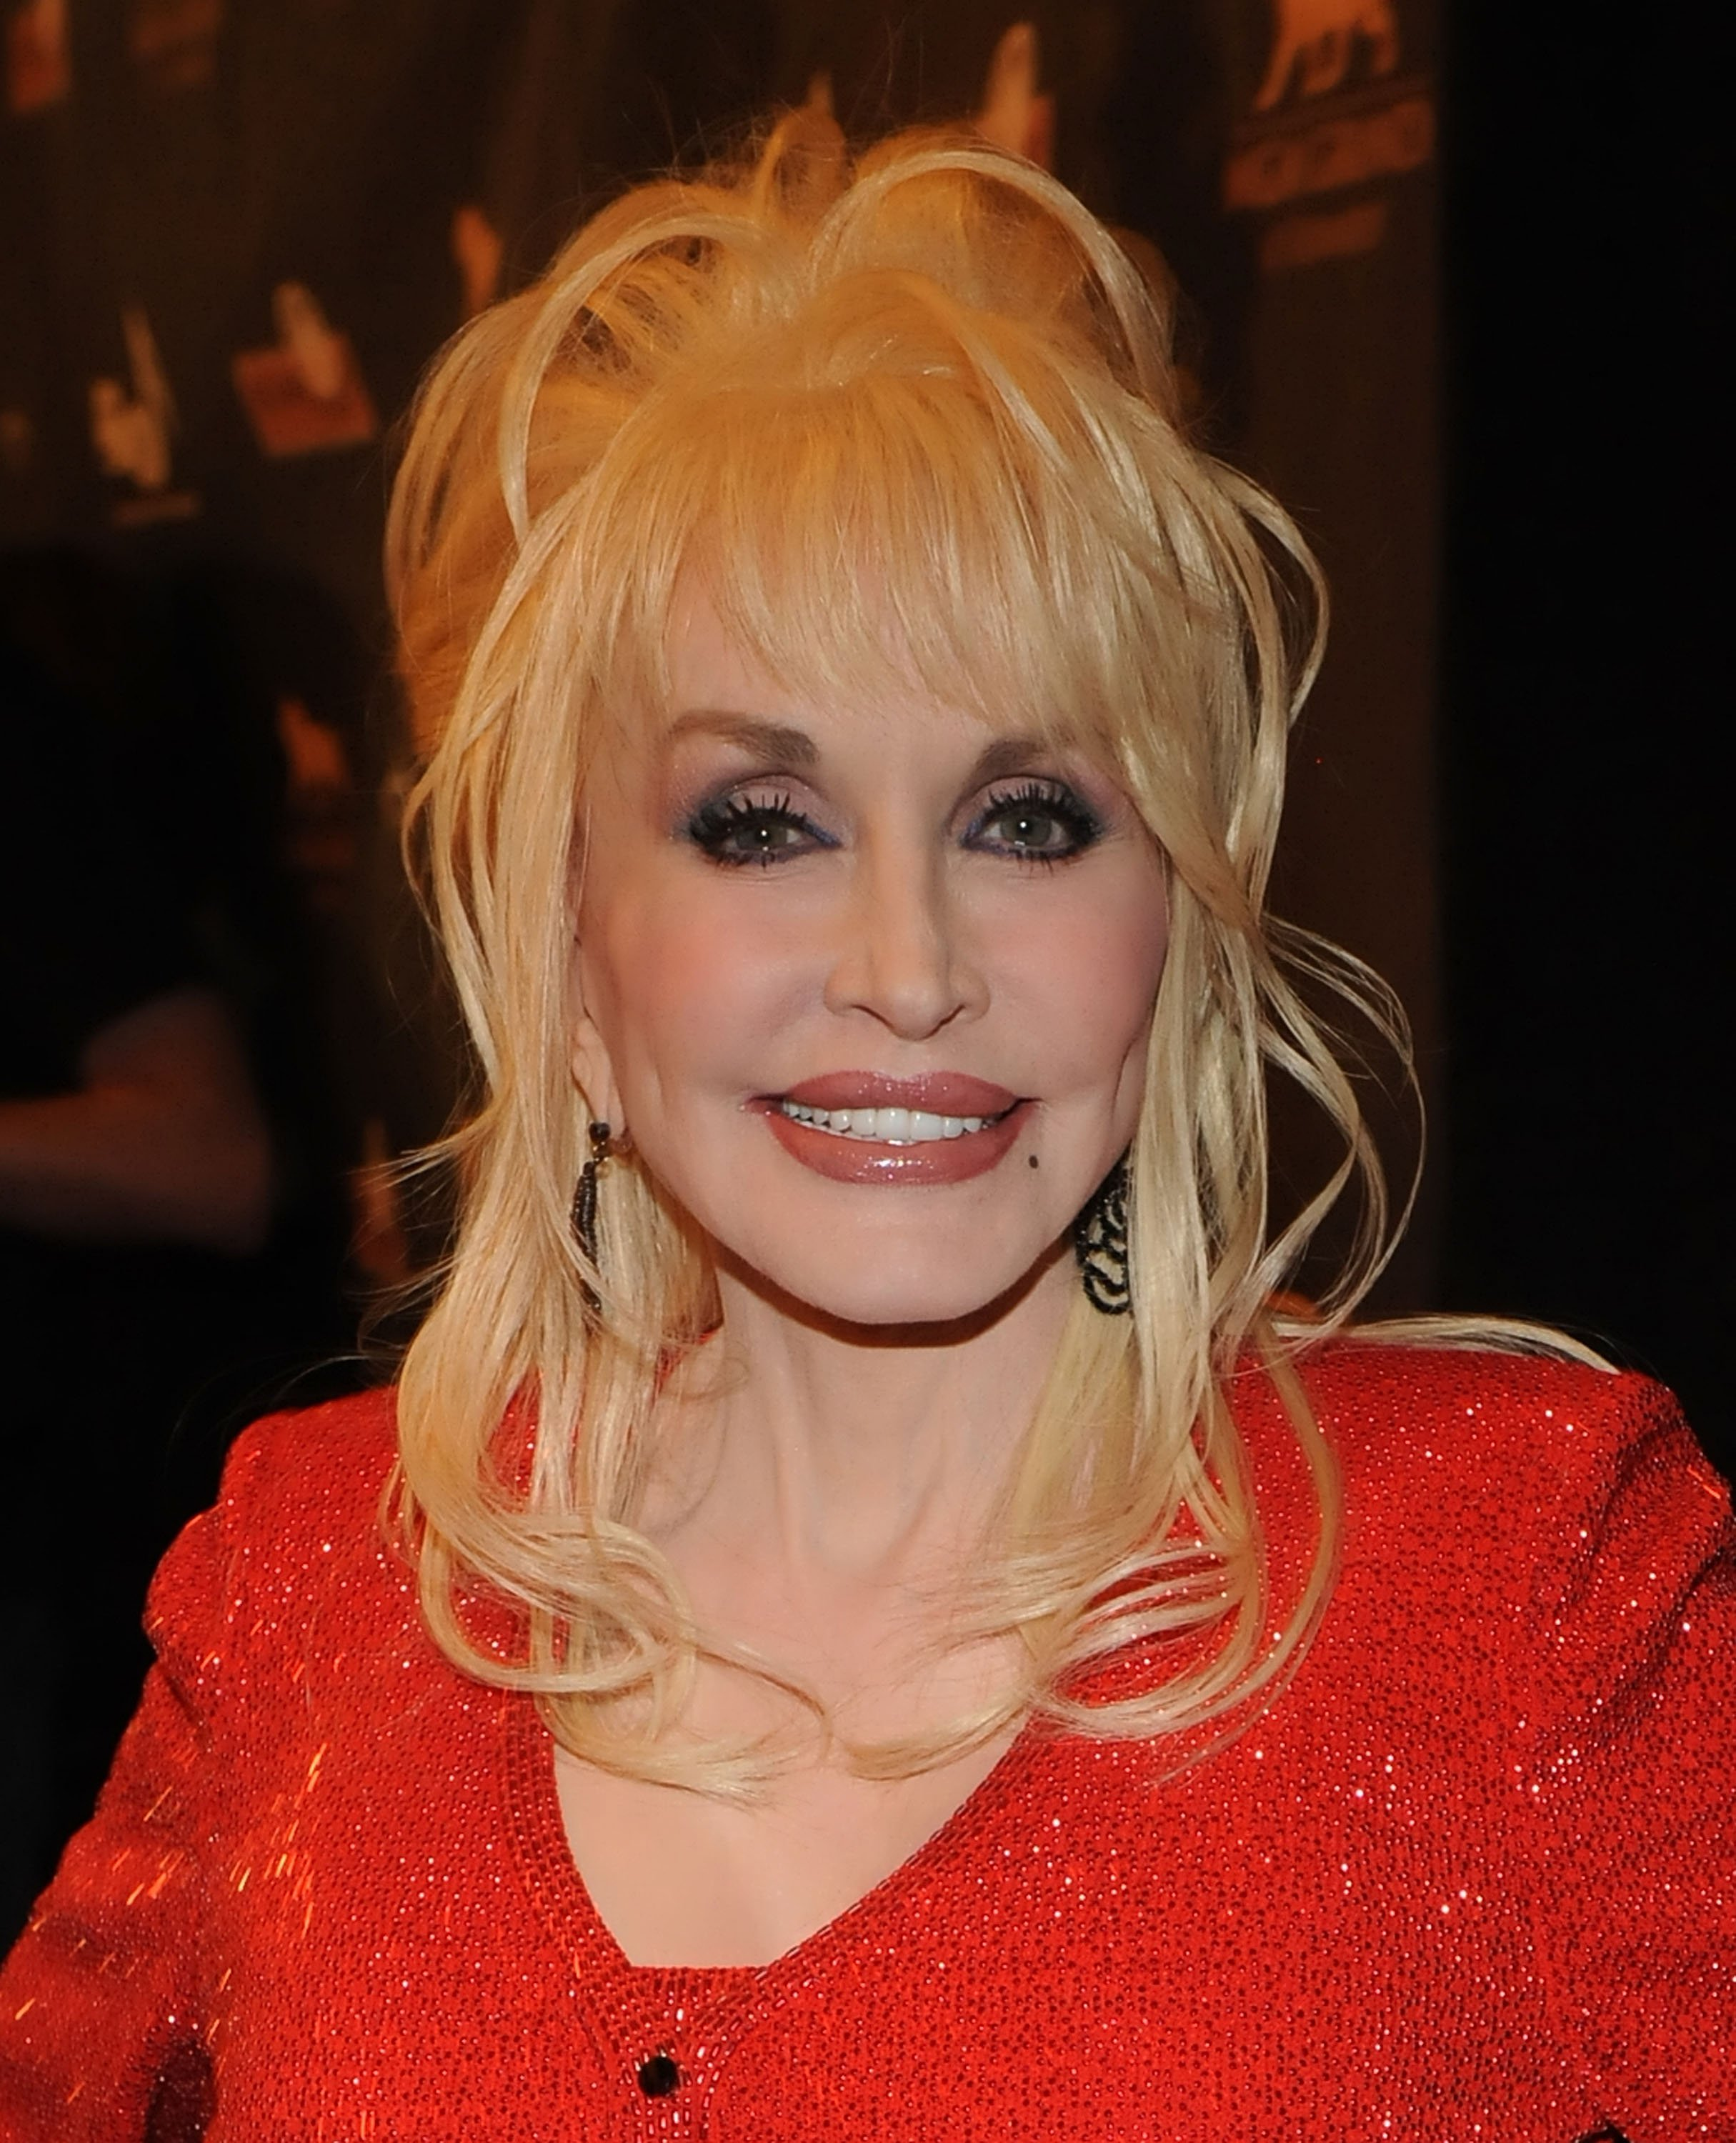 Dolly Parton attends the Kenny Rogers: The First 50 Years awards show at the MGM Grand at Foxwoods on April 10, 2010 in Ledyard Center, Connecticut | Photo: Getty Images